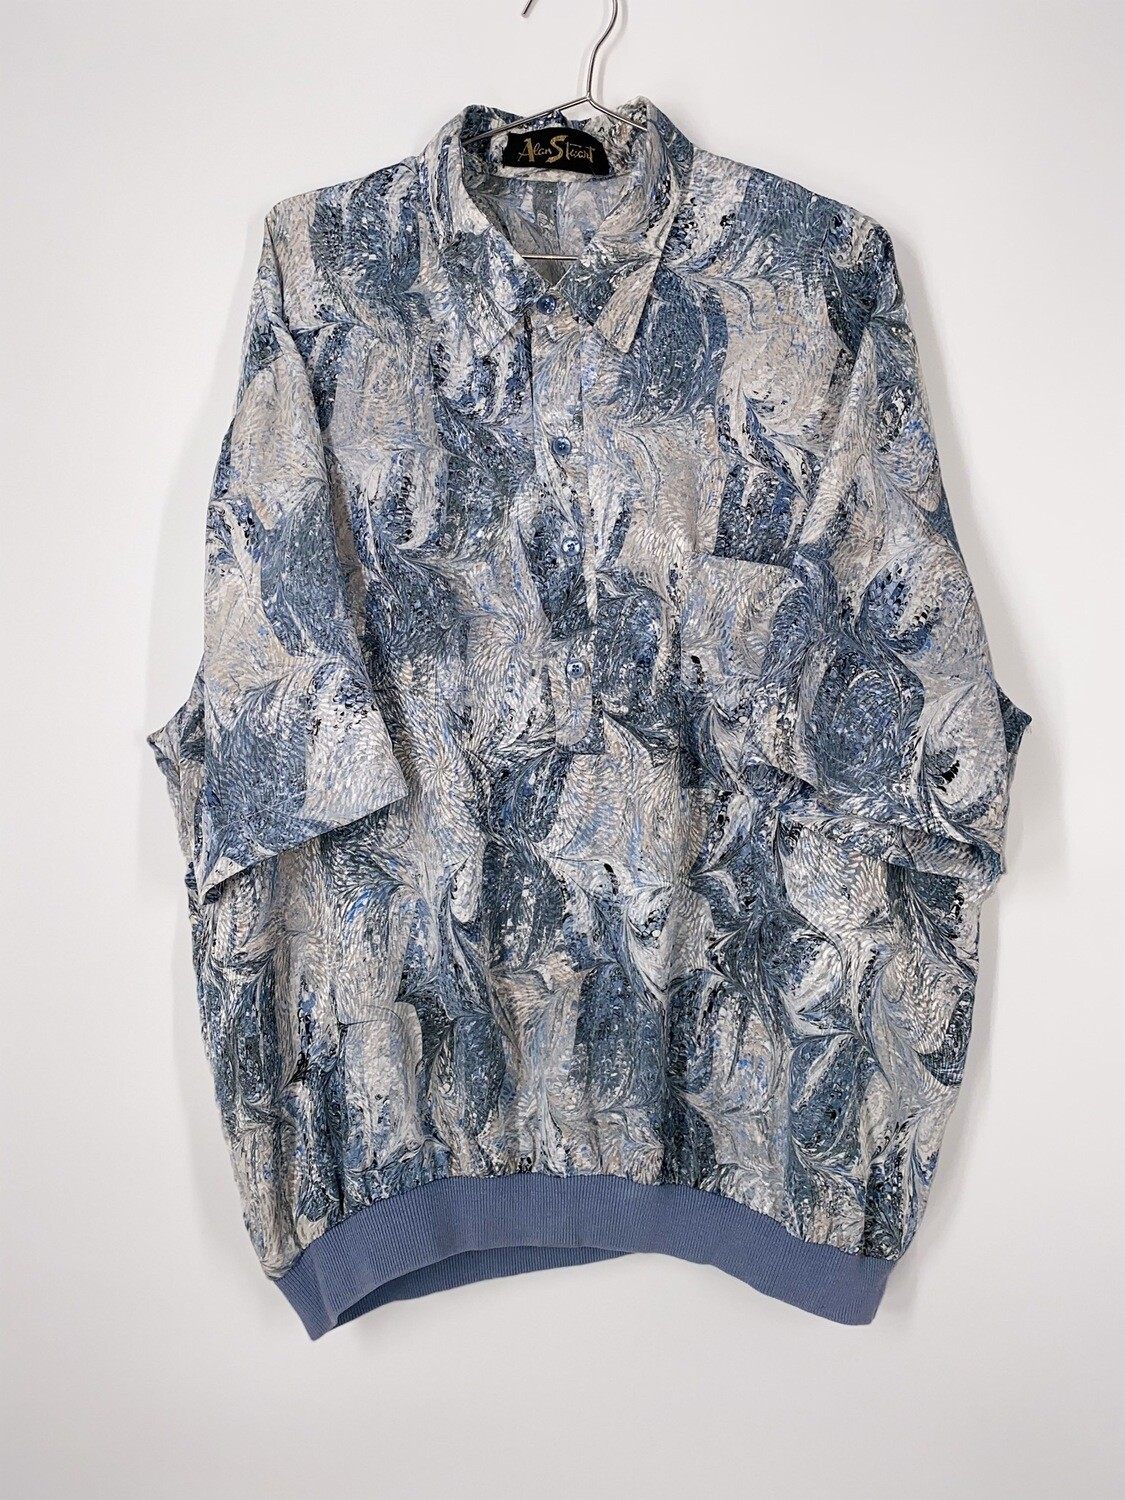 Alan Stuart Blue Abstract Print Top Size L